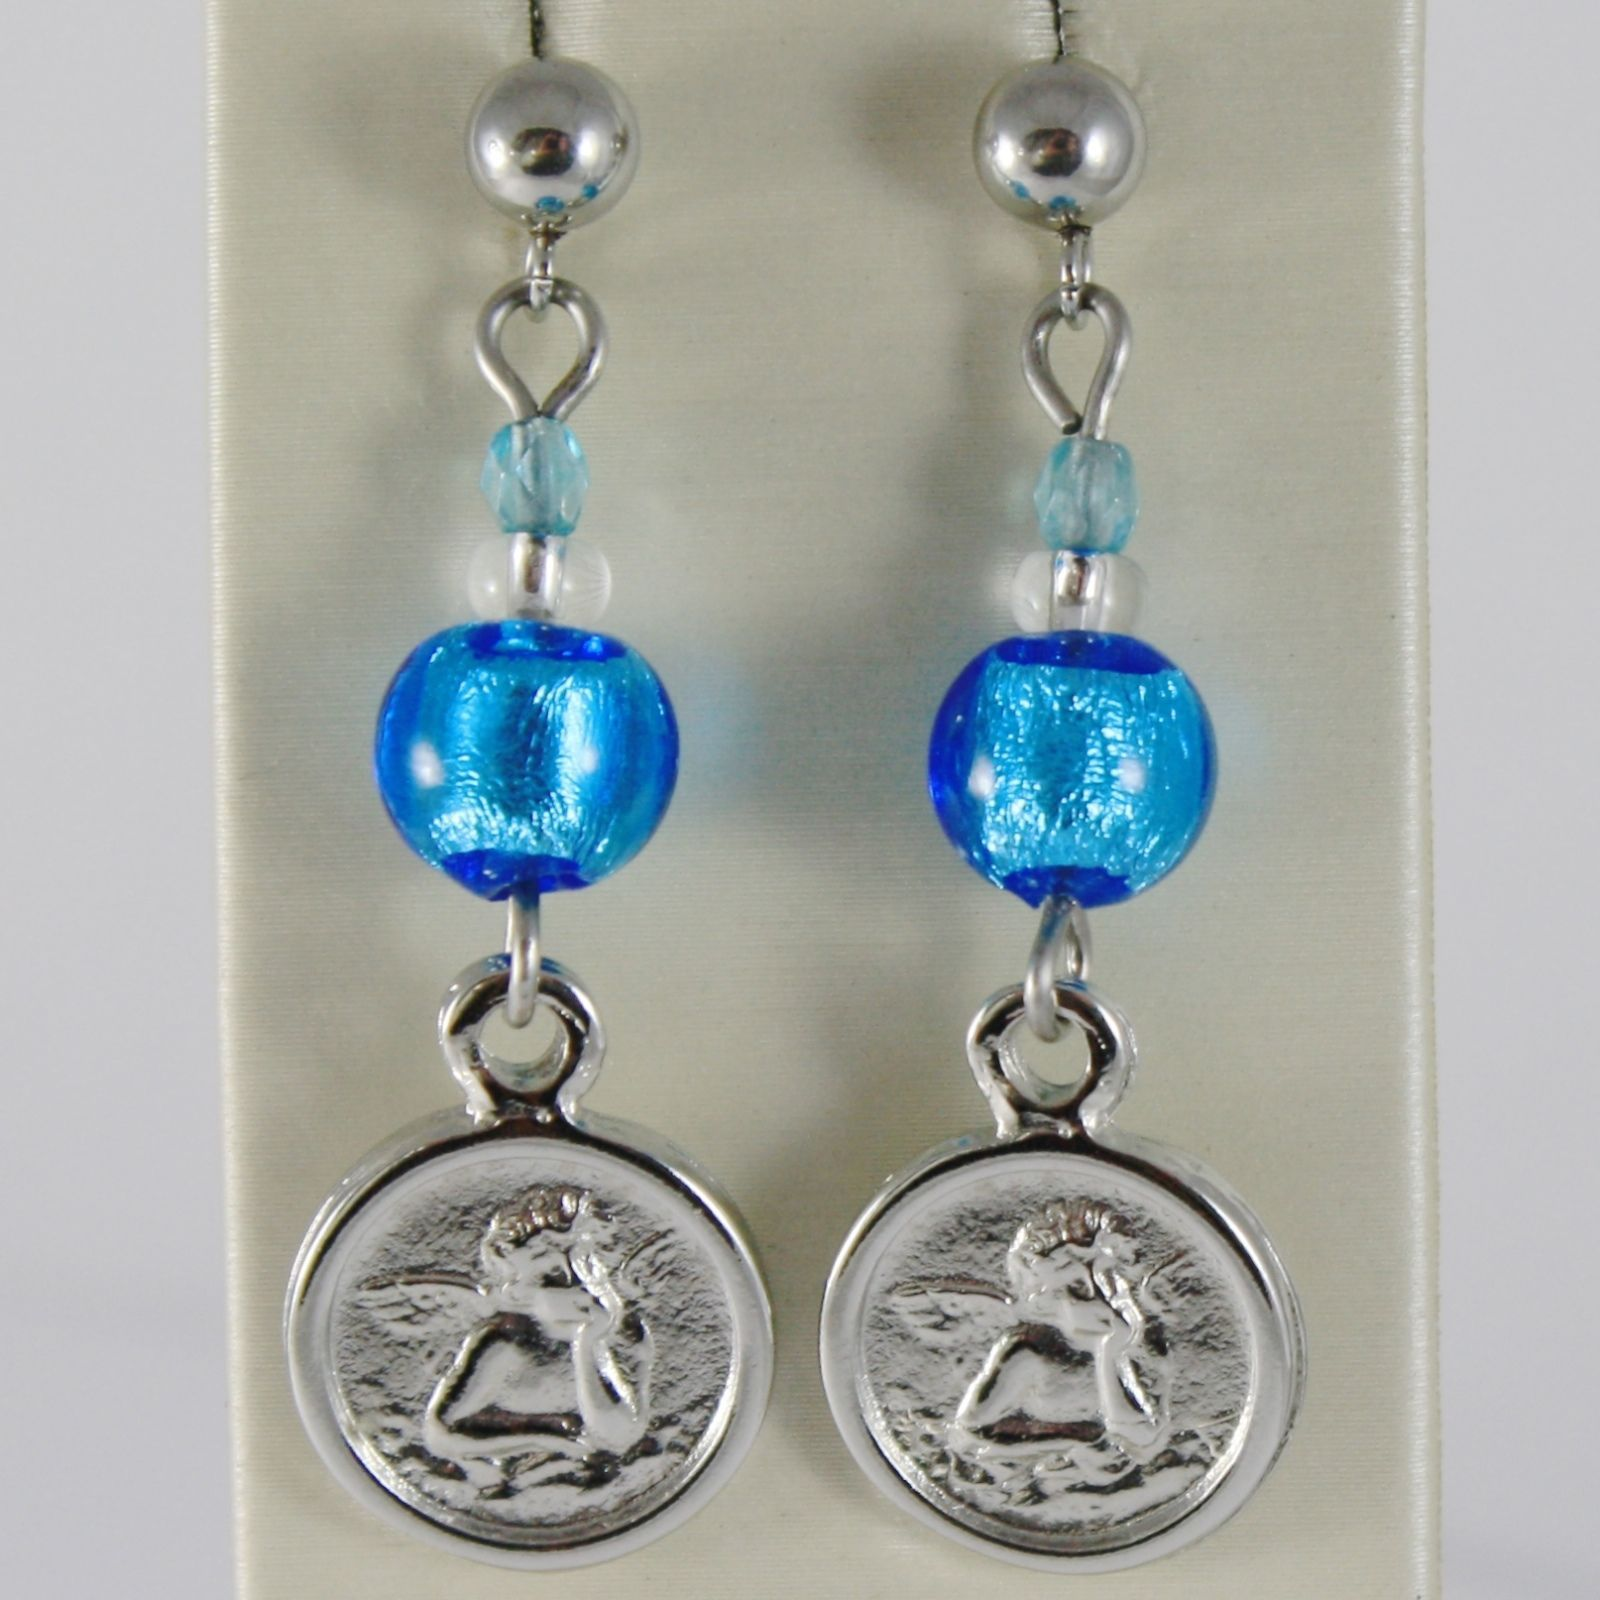 ANTICA MURRINA VENEZIA PENDANT EARRINGS ANGEL MEDAL AND BLUE SPHERES BALLS BALL